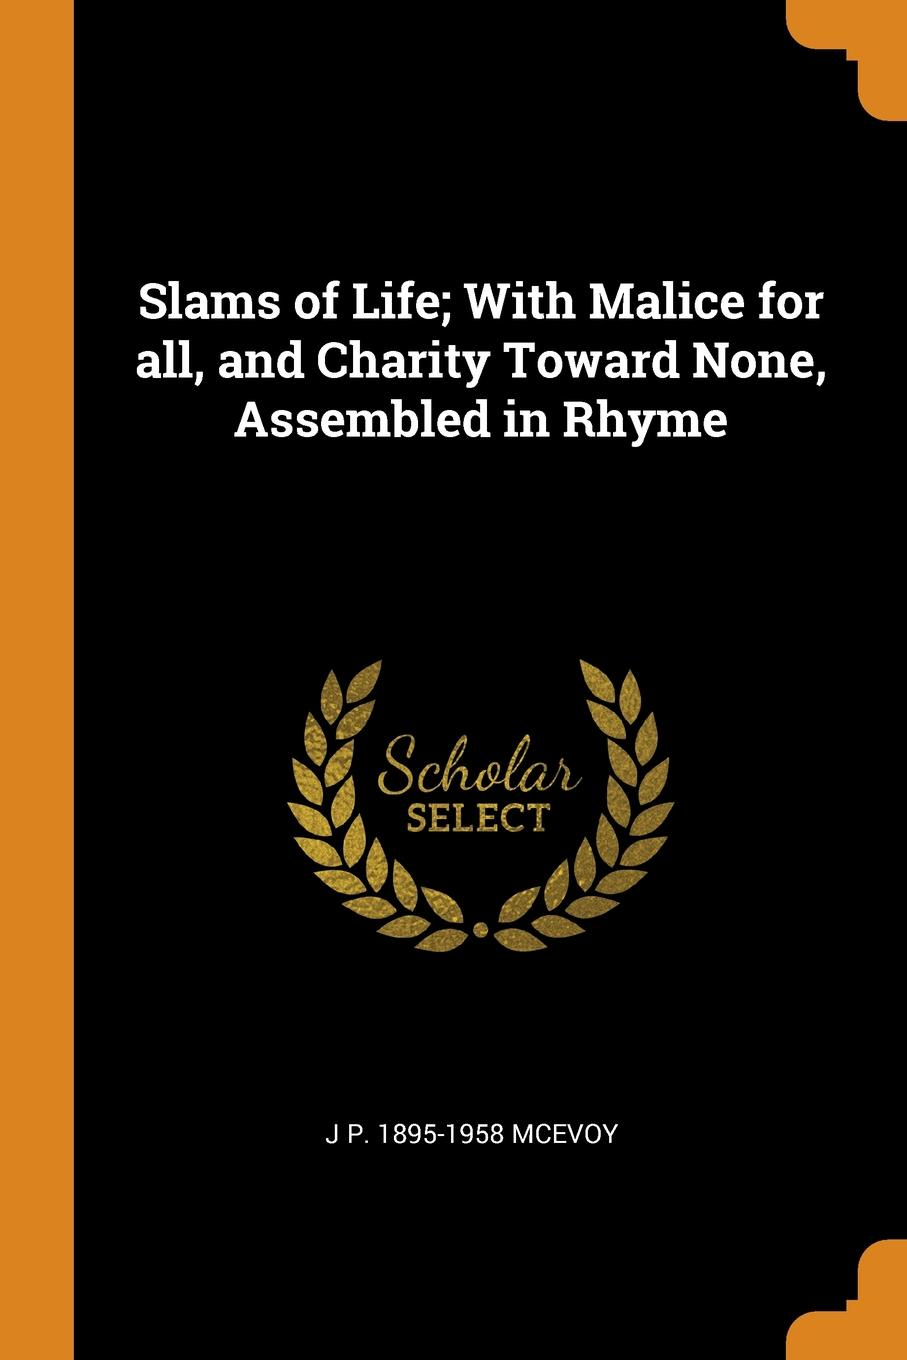 J P. 1895-1958 McEvoy Slams of Life; With Malice for all, and Charity Toward None, Assembled in Rhyme